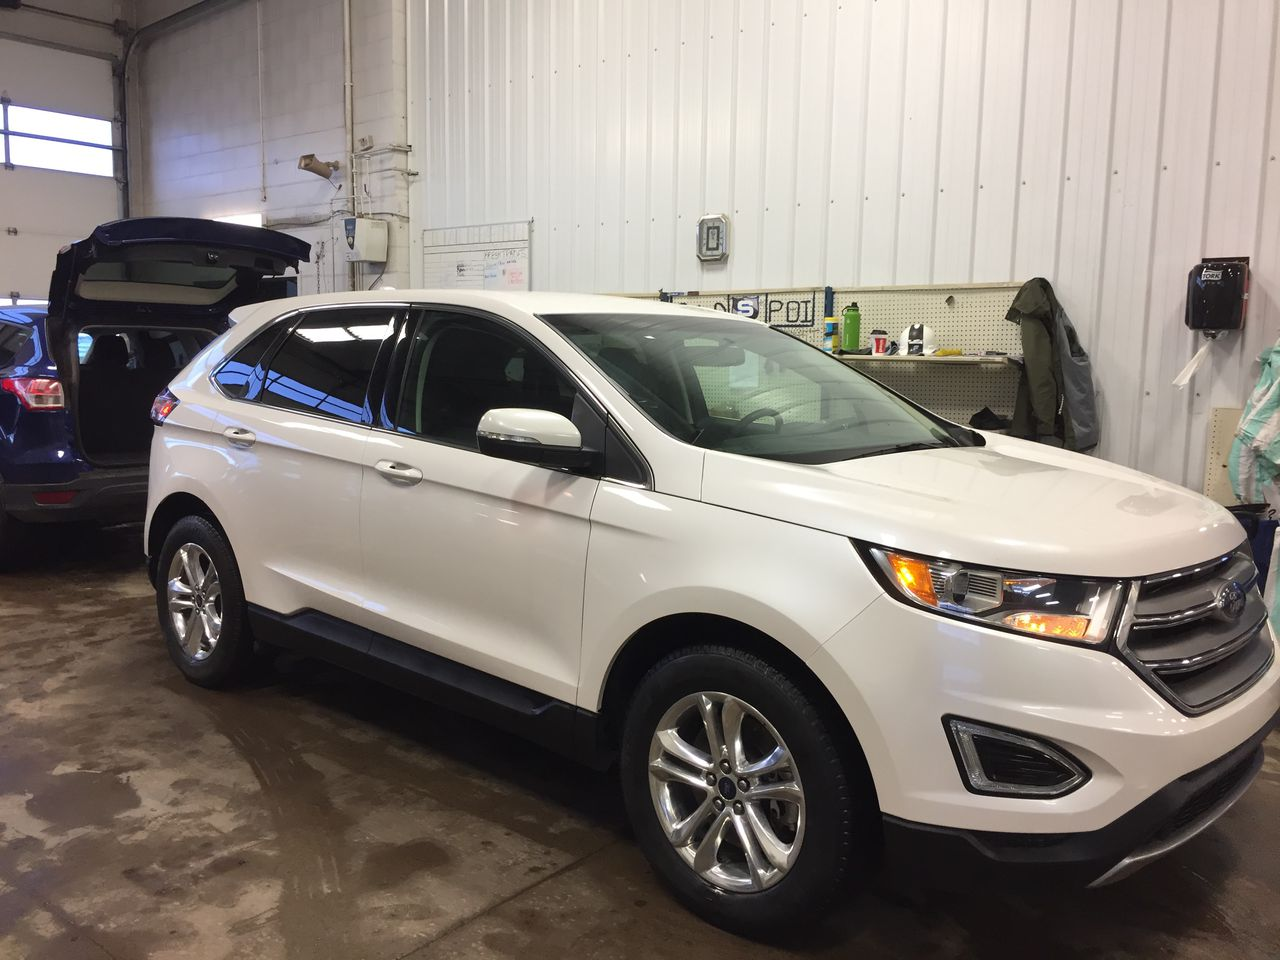 2015 Ford Edge AWD SEL (TE20014A) Main Image